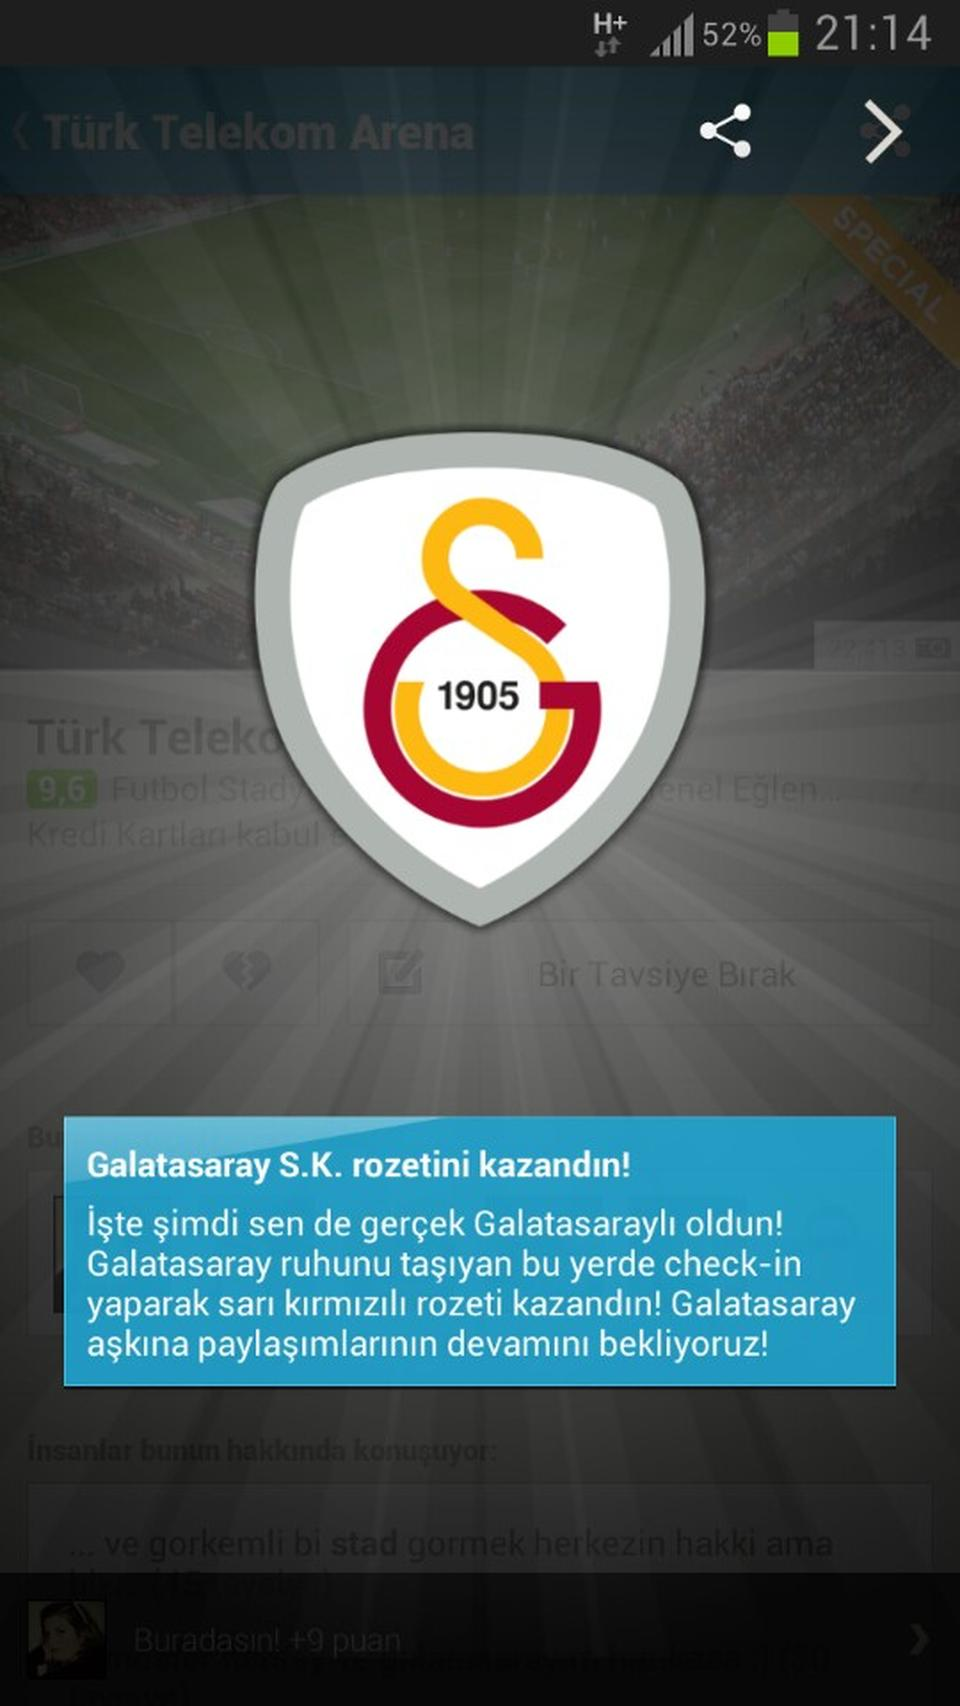 GS_rozet_Android